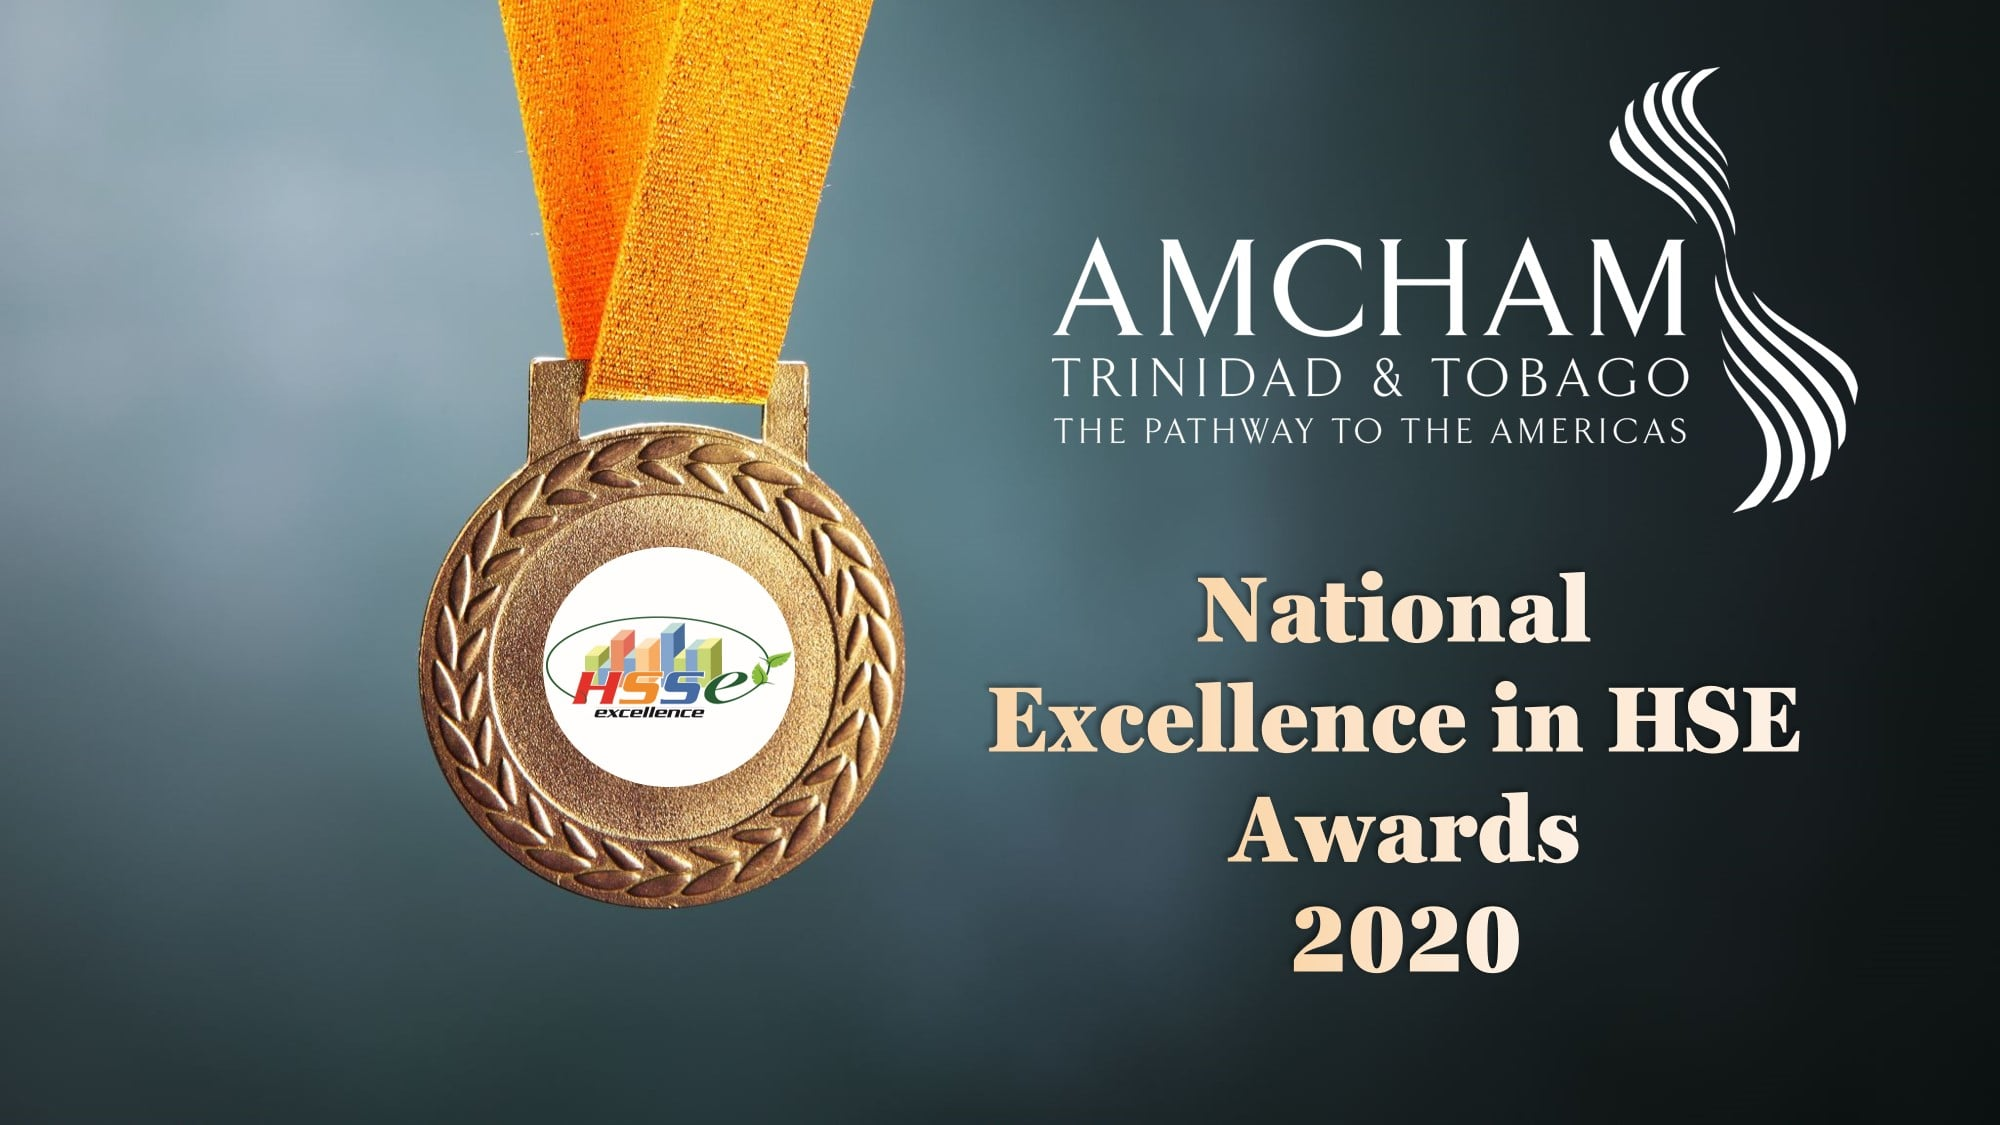 AMCHAM T&T HONOURS HSE EXCELLENCE at its 10th ANNUAL NATIONAL EXCELLENCE in HSE AWARDS